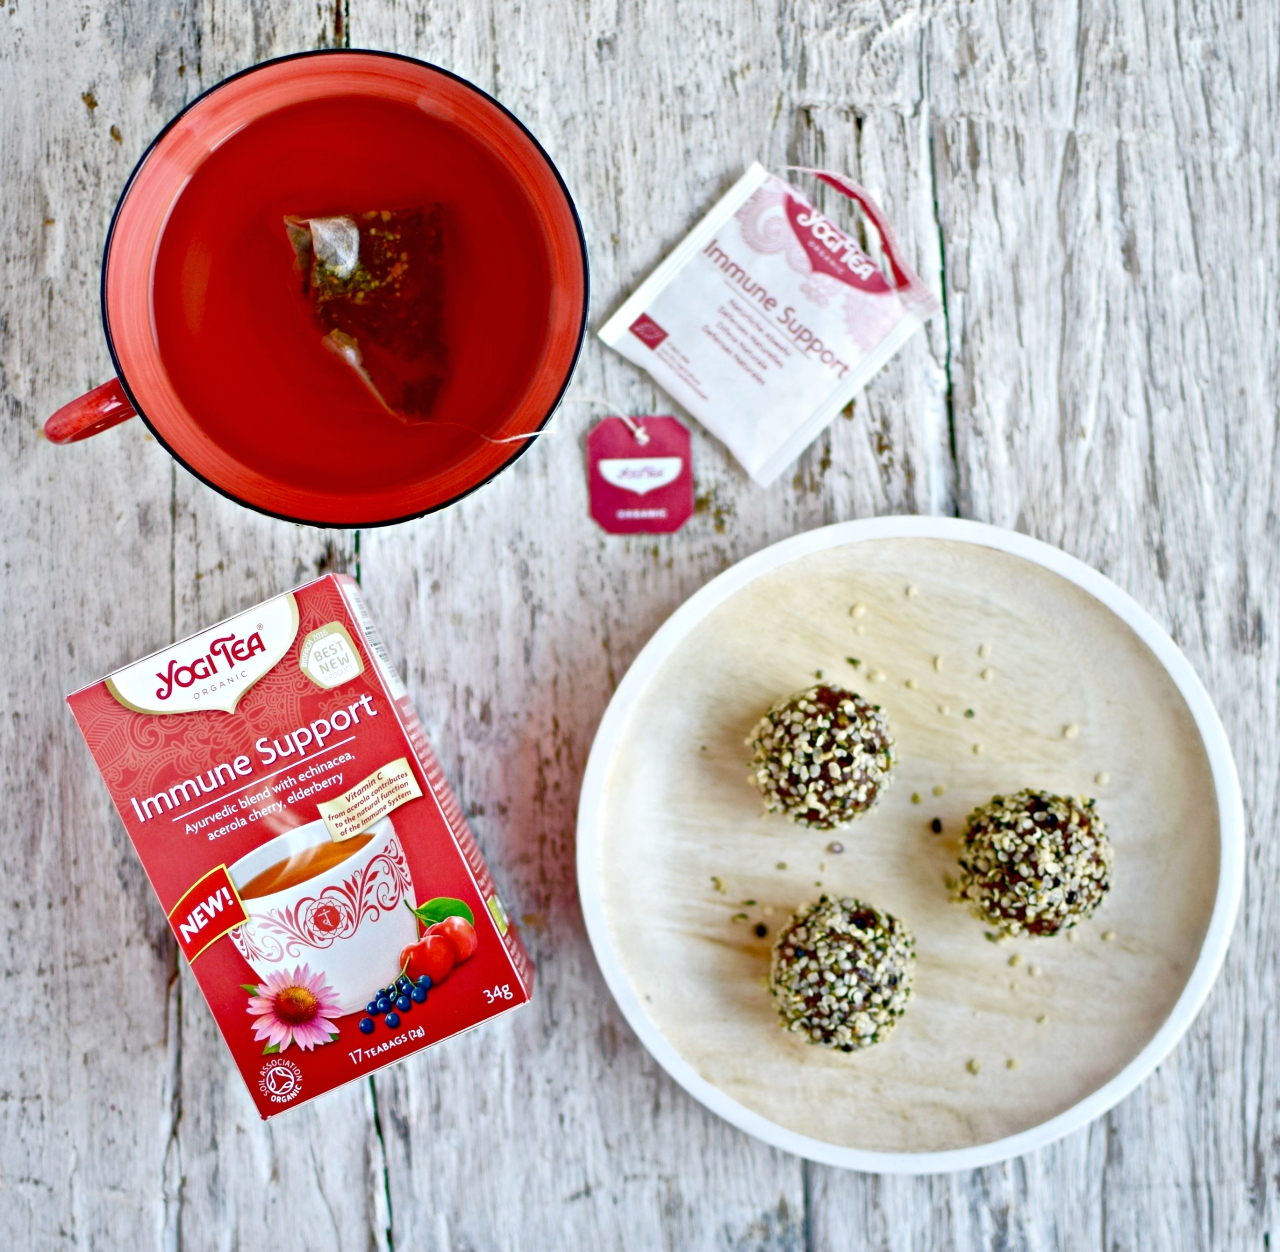 These tea-infused sour cherry energy bites make a brilliant protein-rich and whole food snack. Perfect for those peckish moments, lunchboxes and after exercise. Even for an on-the-go breakfast. A no-sugar-added, paleo recipe.